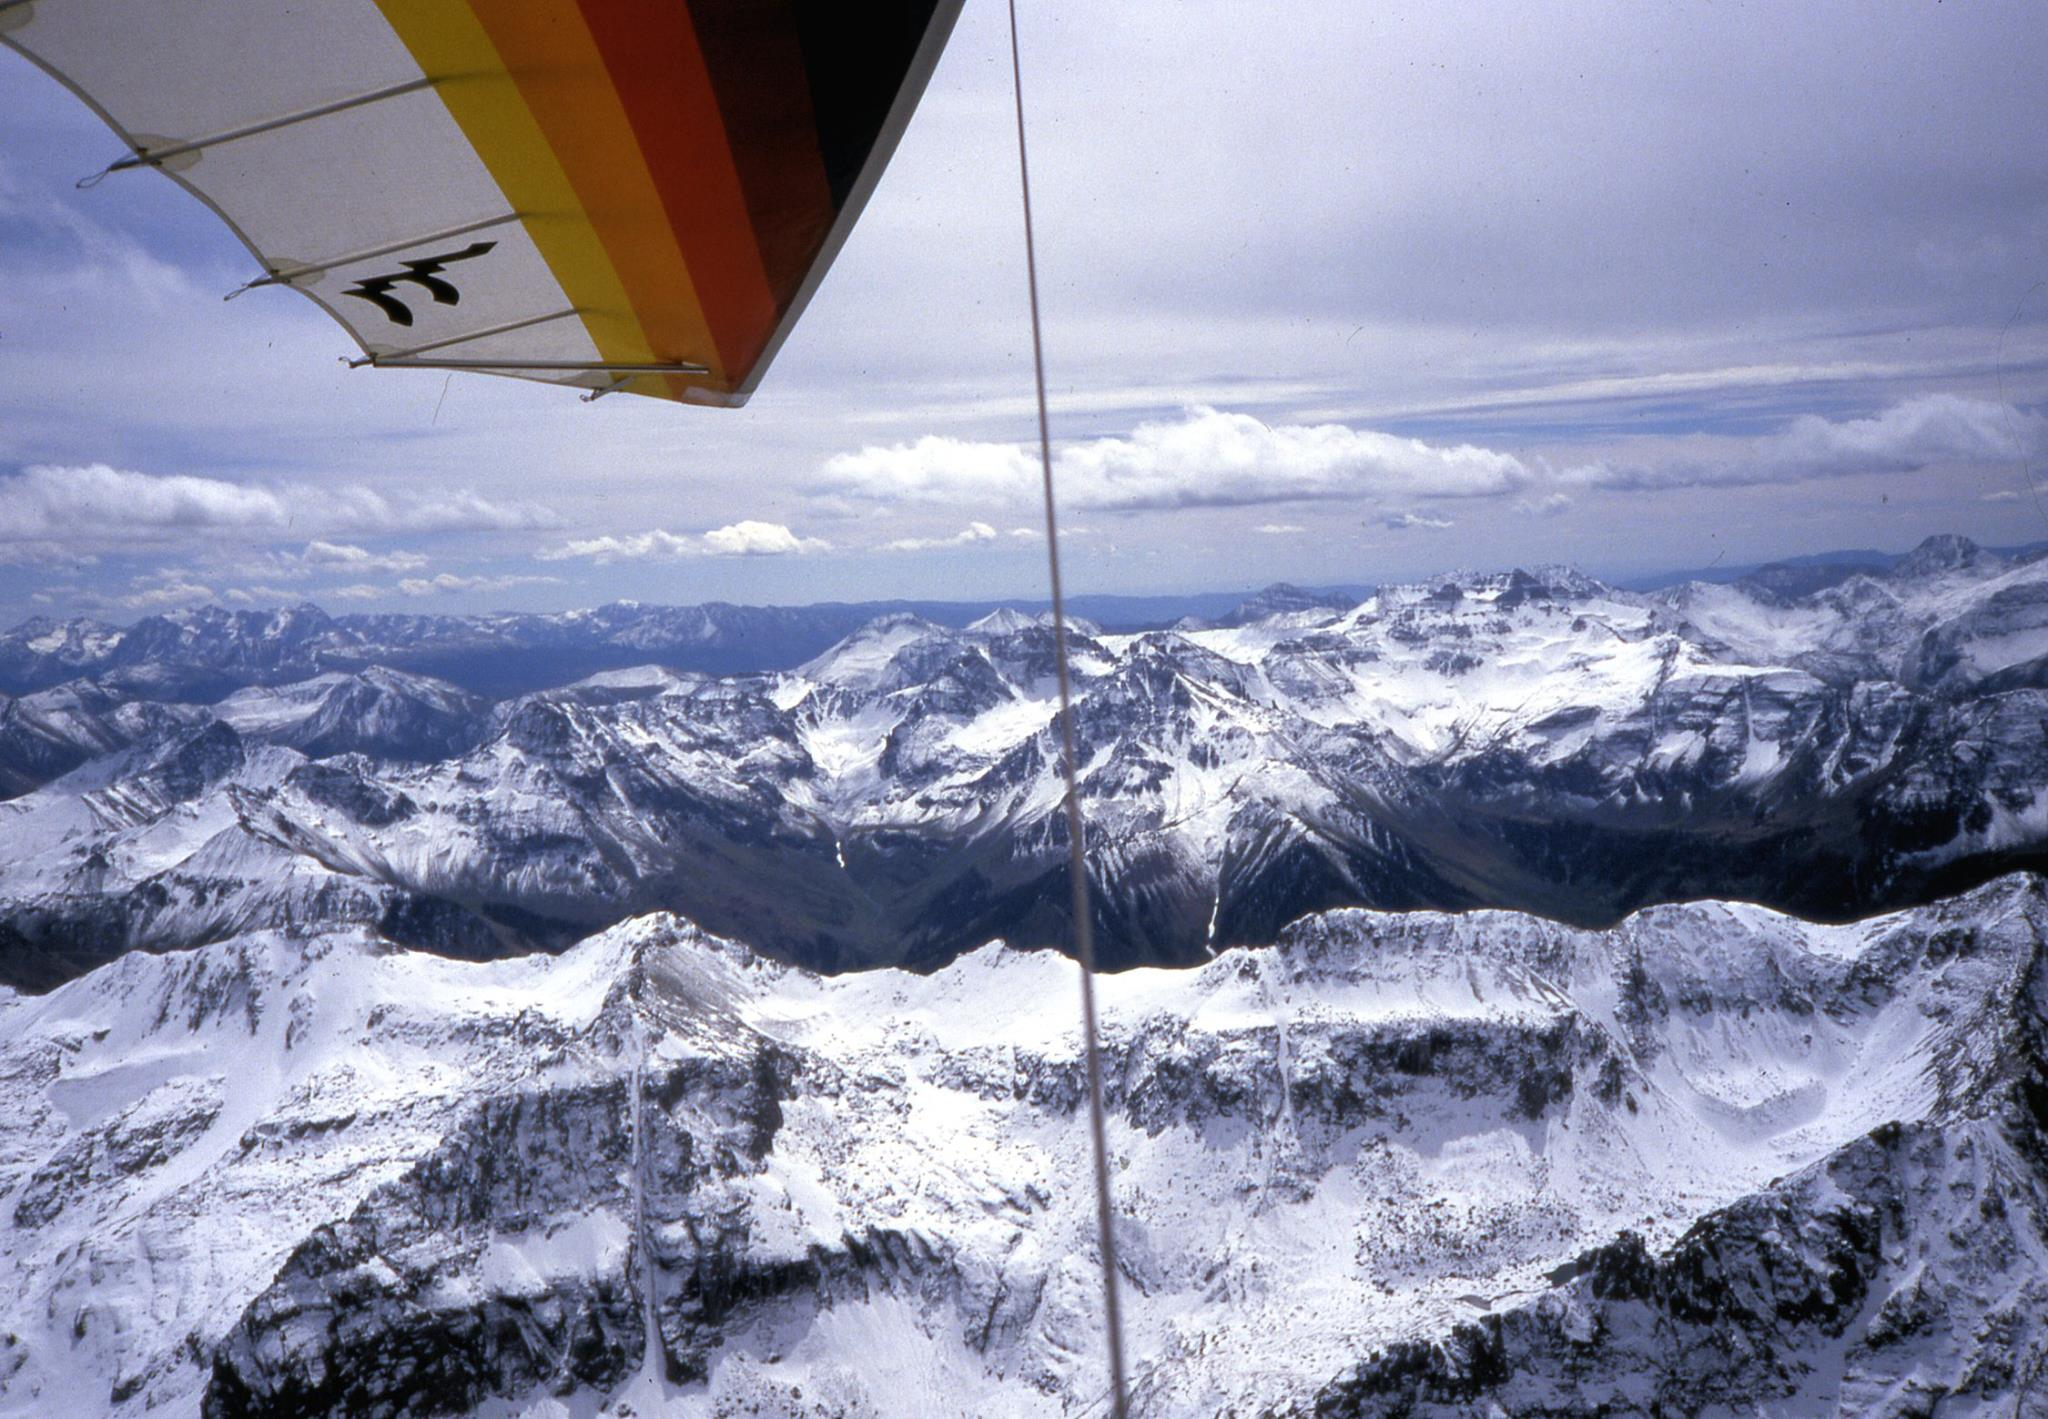 Paul Voight flying lat summer above Telluride.